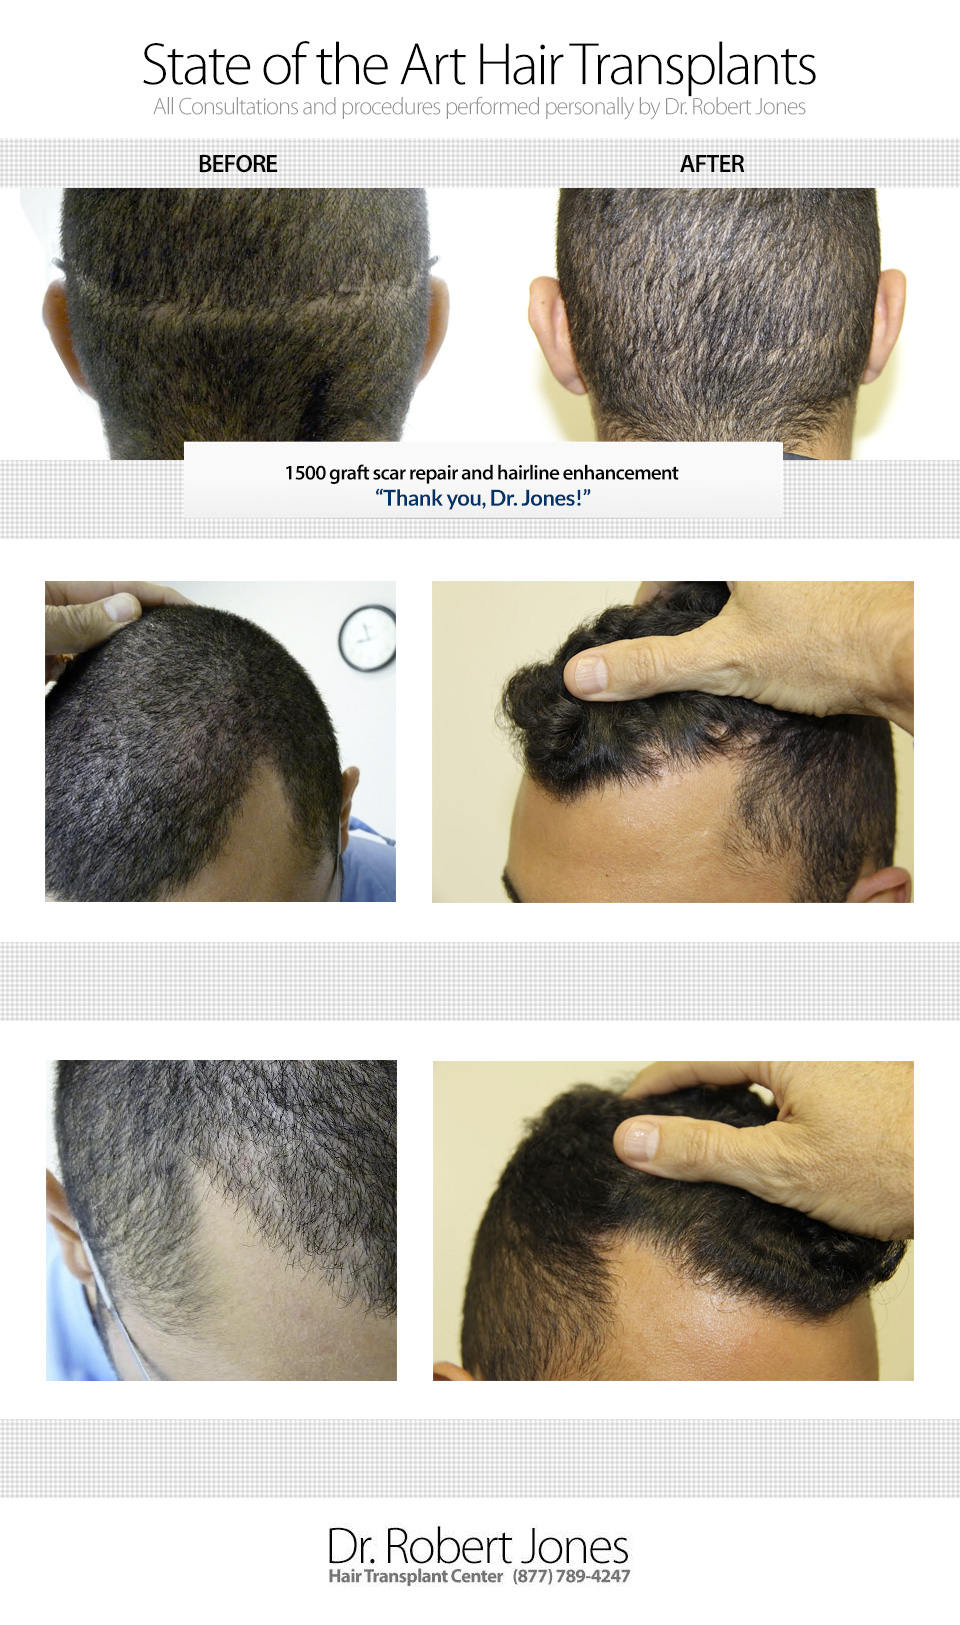 1500-graft-scar-repair-and-hairline-enhancement